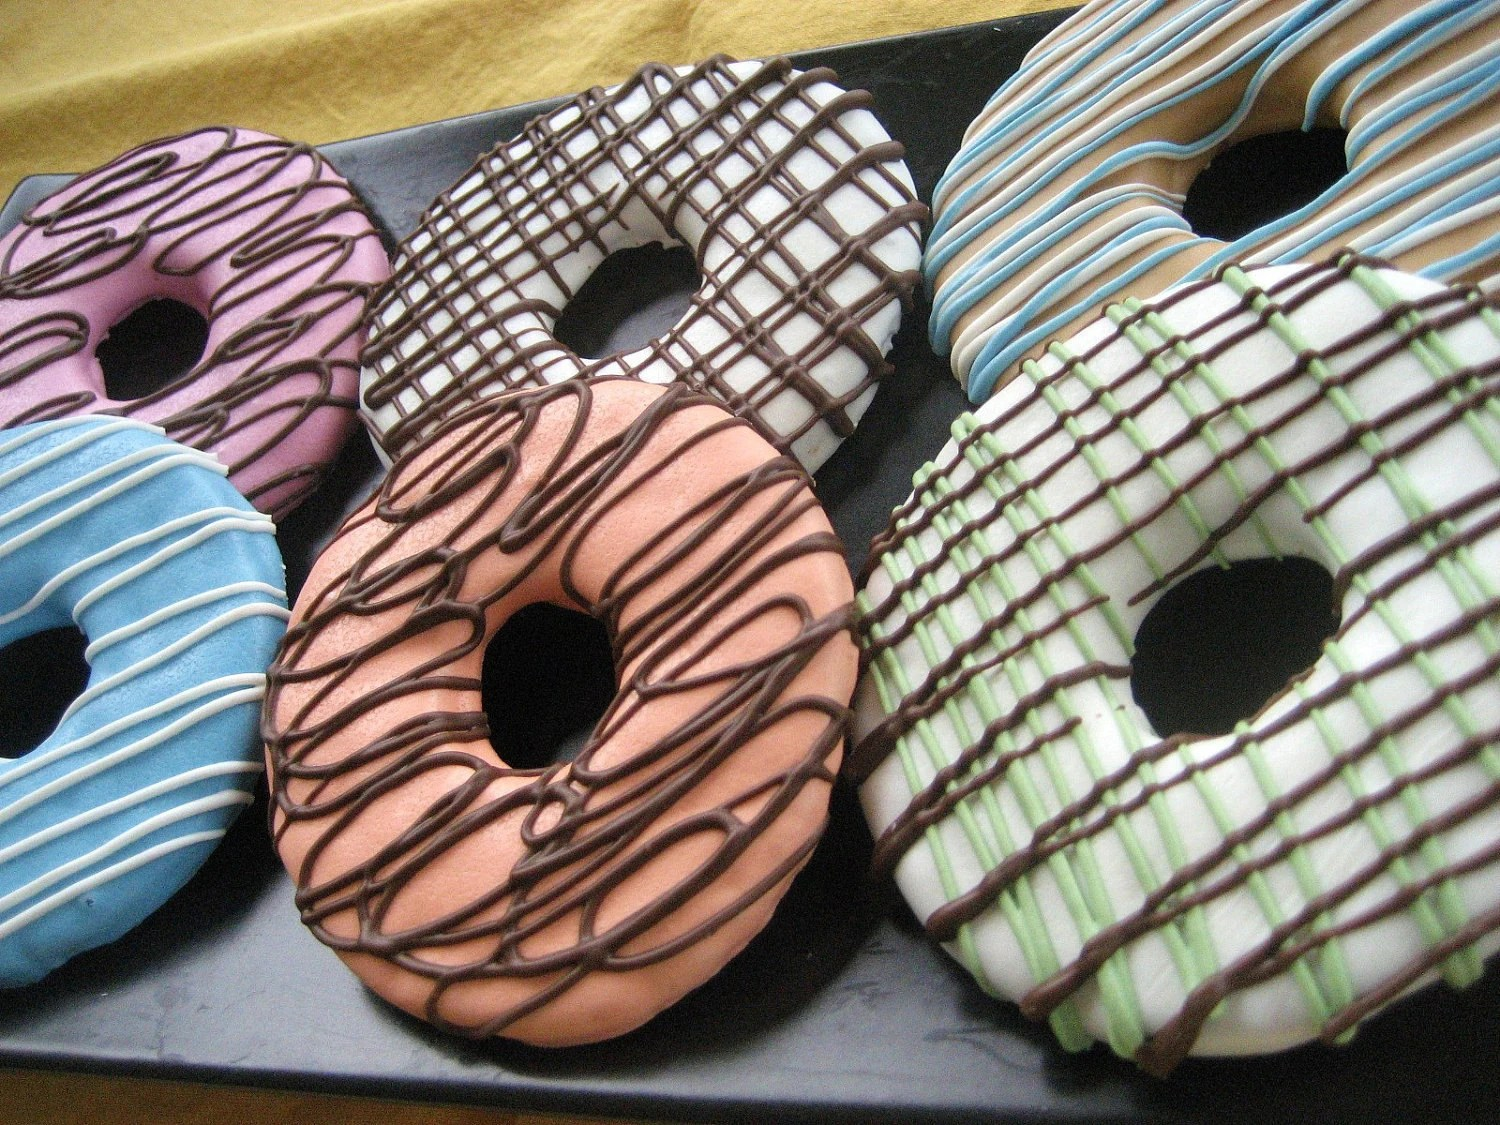 Gourmet Dog Treats - Donuts Decorated Dog Treats - TwoTailsDogBakery